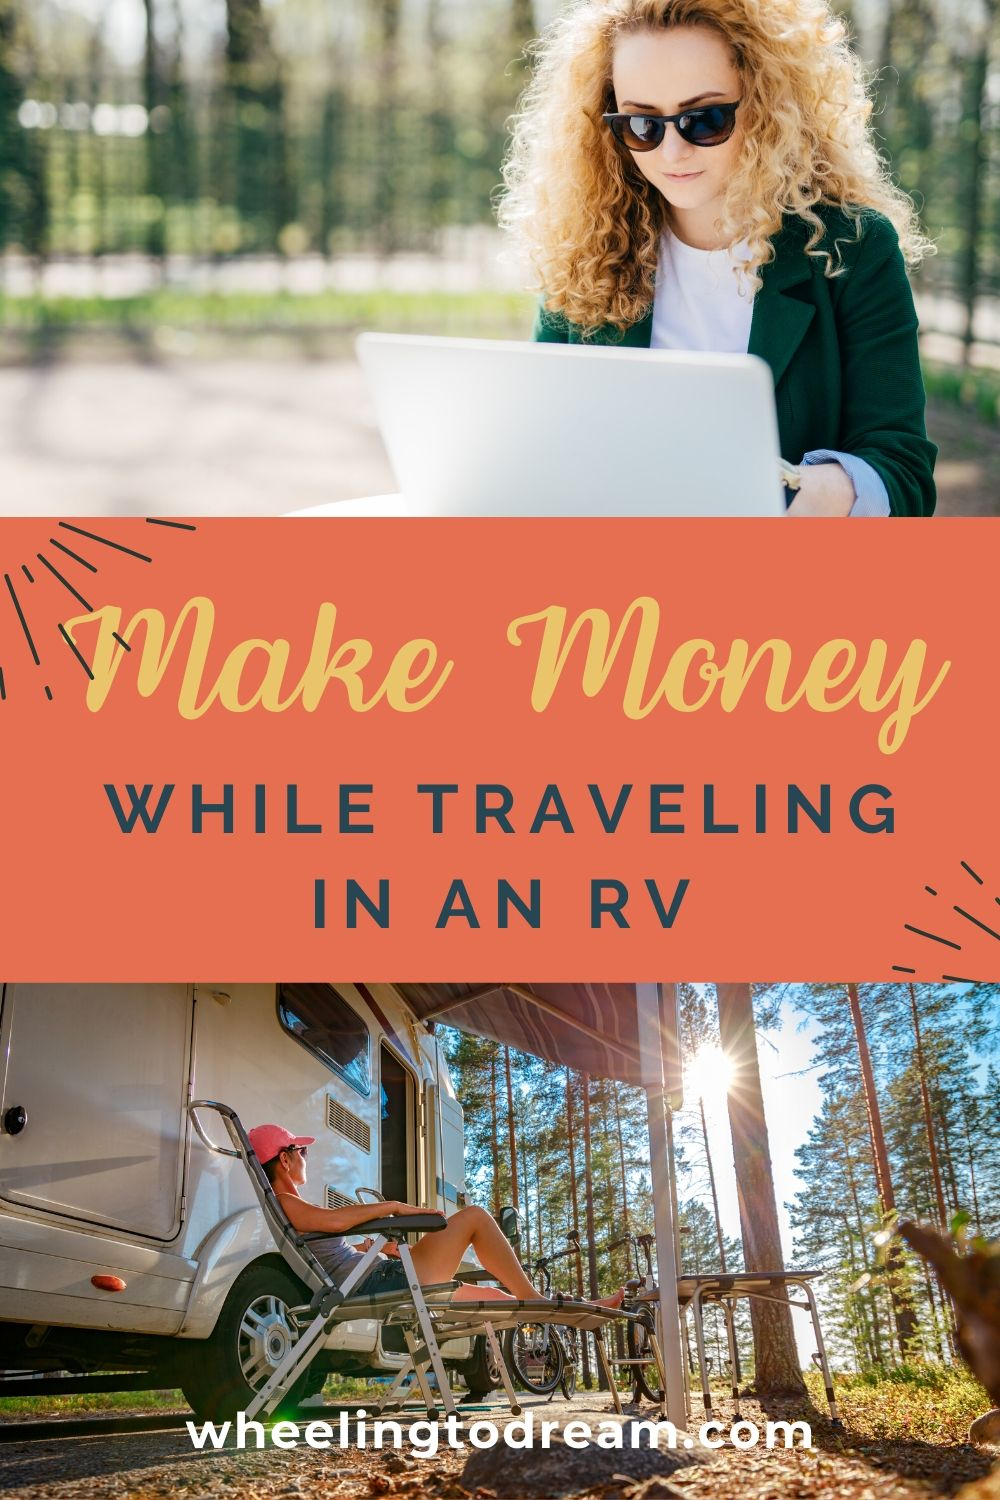 Are you wondering how in the world you can make money while you travel? Look no further! This blog post is a great resource for ways you can turn your current skills into an income plus other options like workamping and more! Learn how to making money traveling and fund your adventures and make your dreams come true. Get paid to travel with family! This is surely to help RV living full time with kids easier if you can make money while you're doing it. #makemoneytraveling #getpaidtotravel